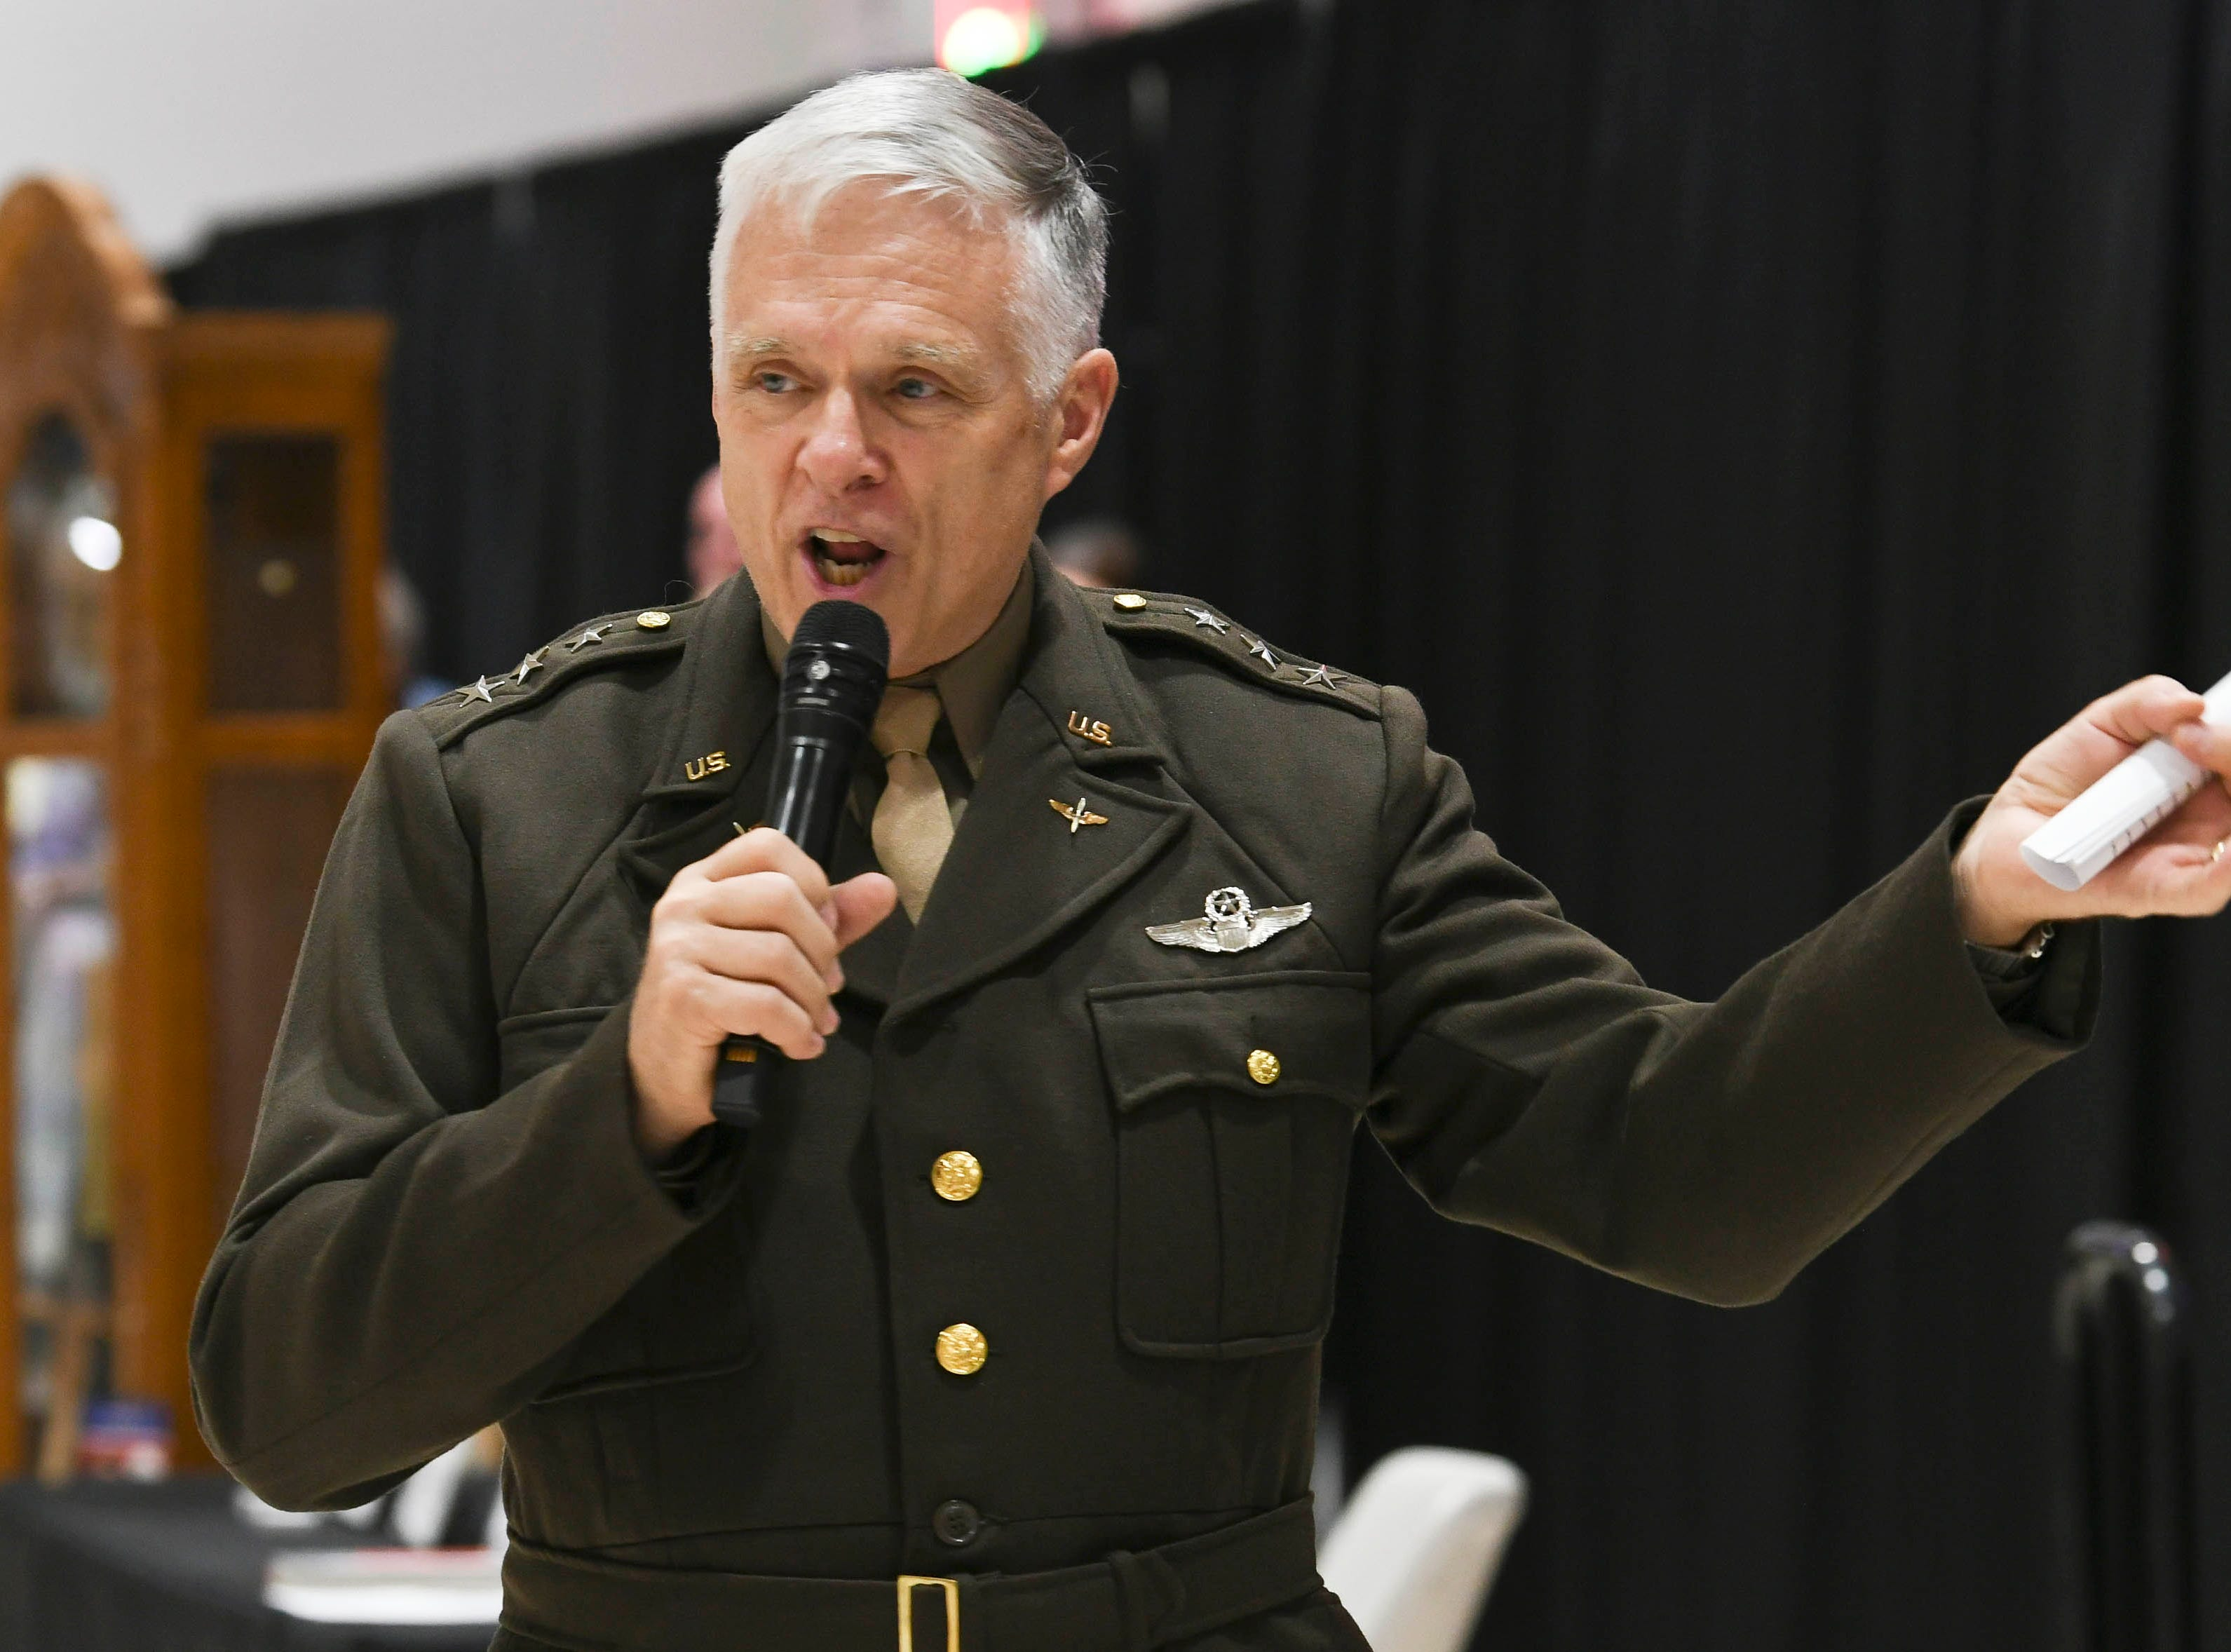 Bill Welser, president of Space Coast Honor Flight, addresses the crowd during Stars and Stripes at American Muscle Car Museum. The event was a fundraiser for Space Coast Honor Flight.